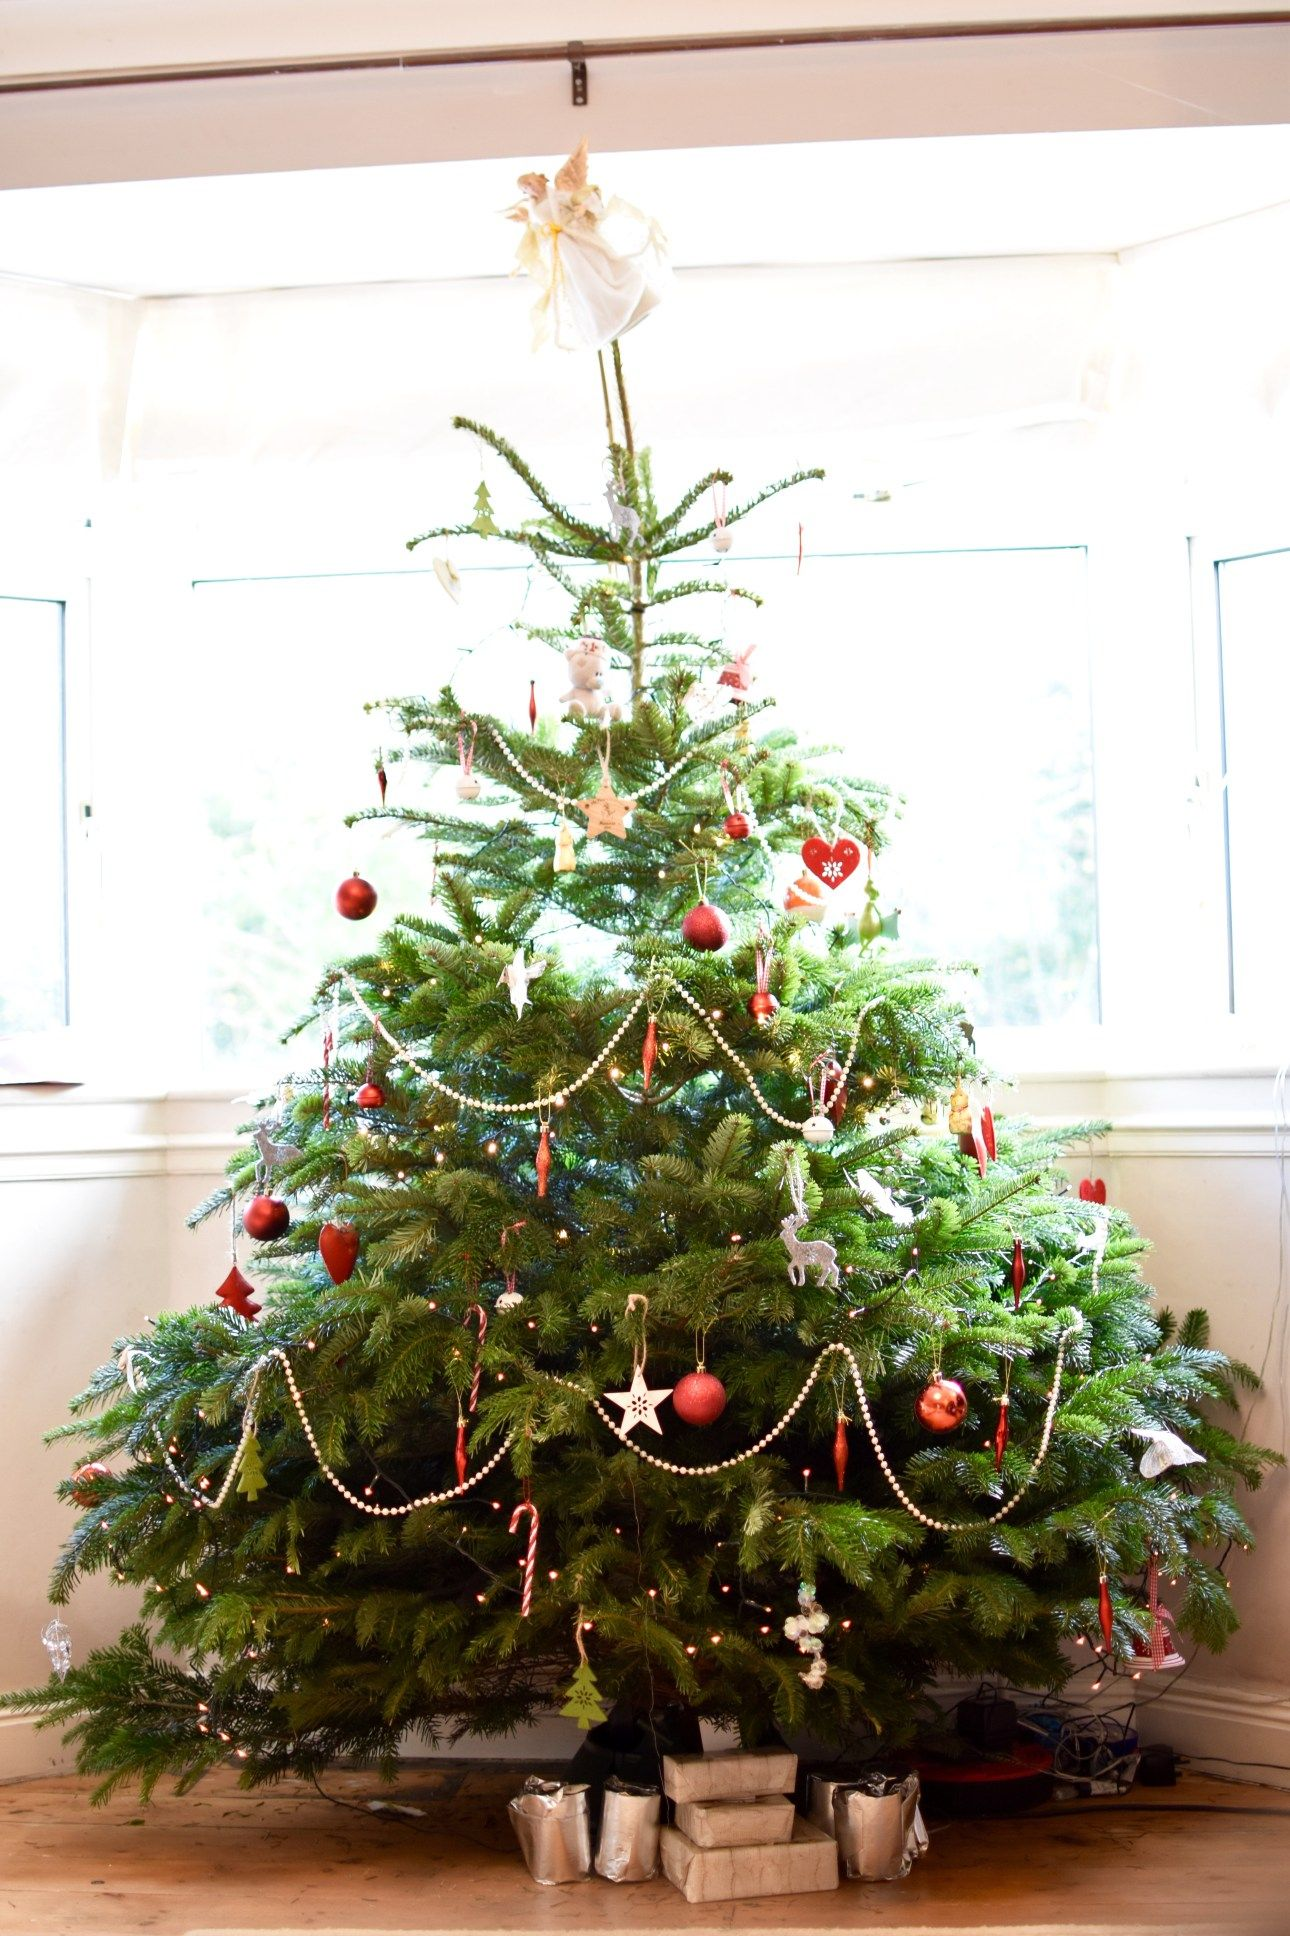 A Scandinavian decoraretd Christmas tree from Pines and Needles